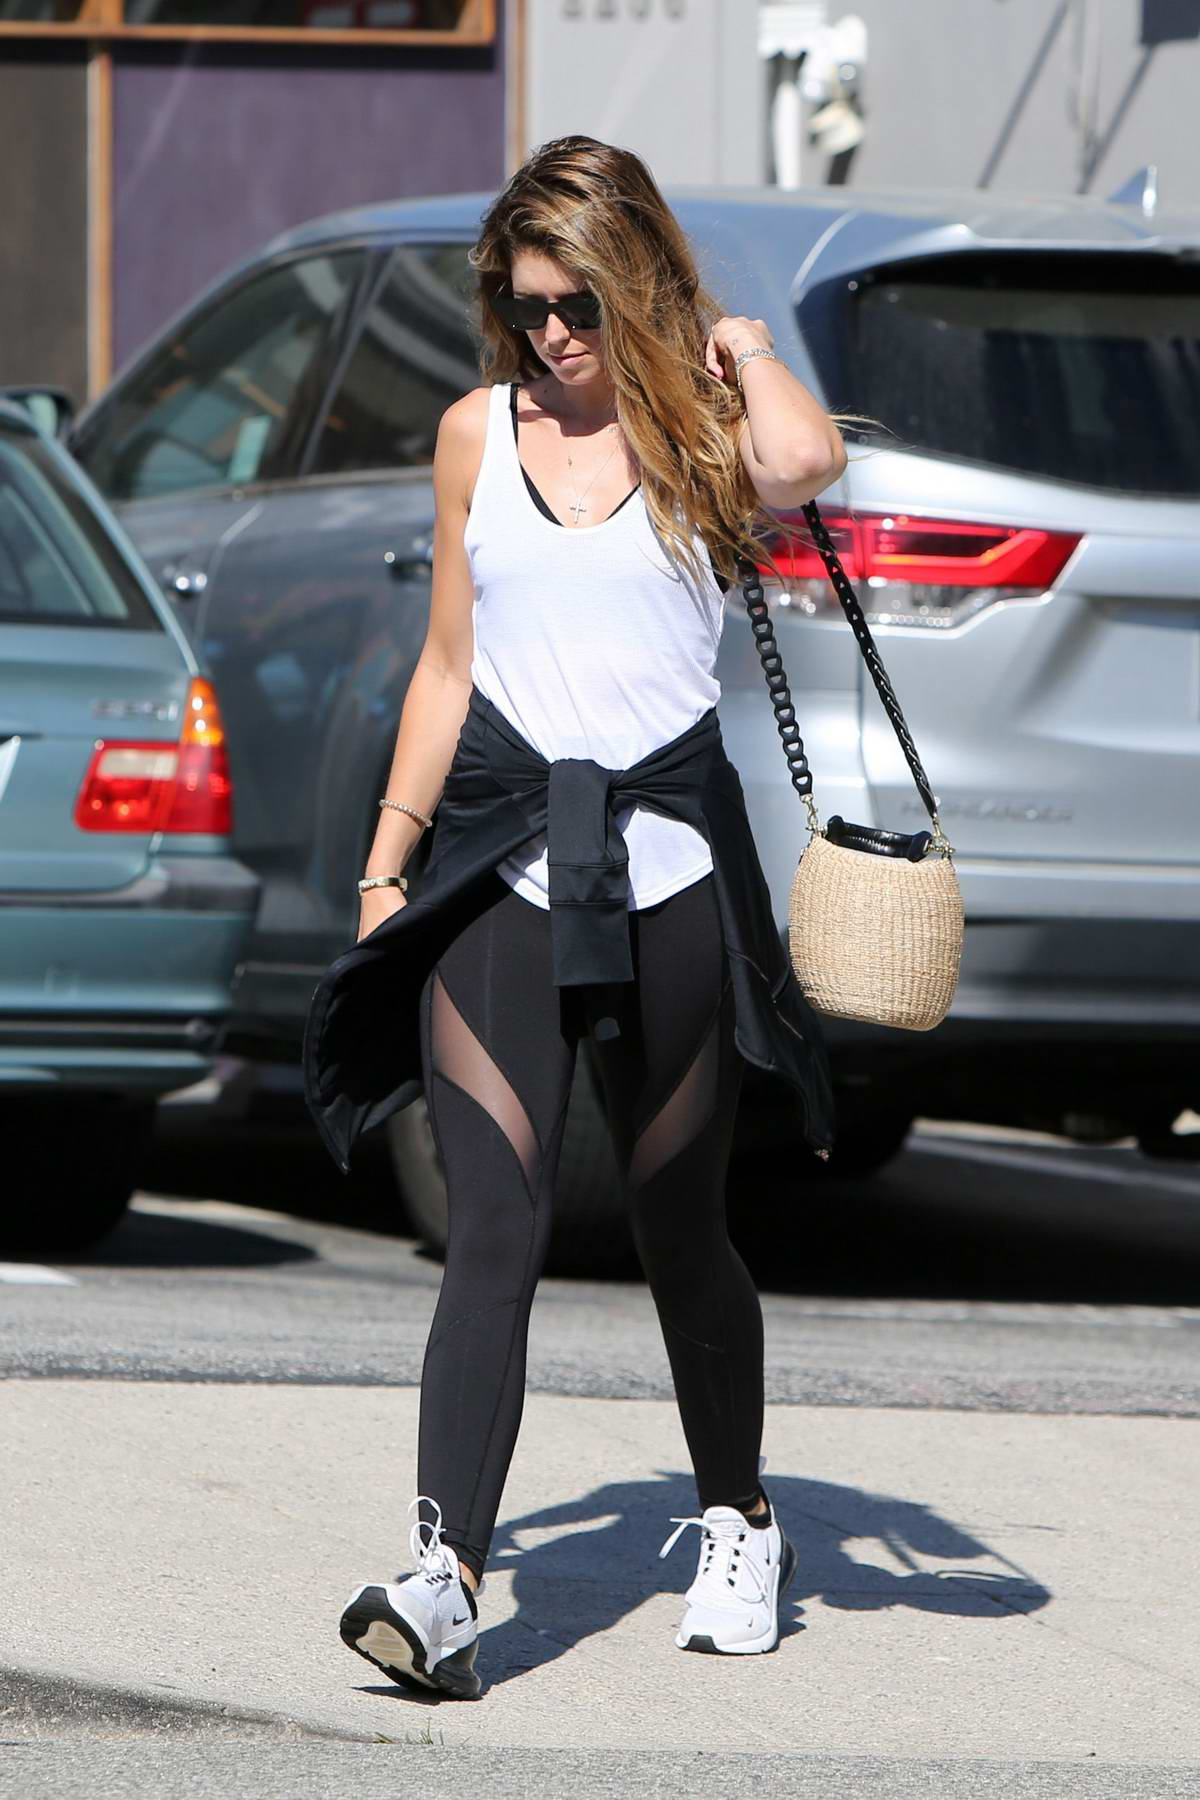 Katherine Schwarzenegger seen leaving after a workout session in a white tank top and black leggings in in Los Angeles